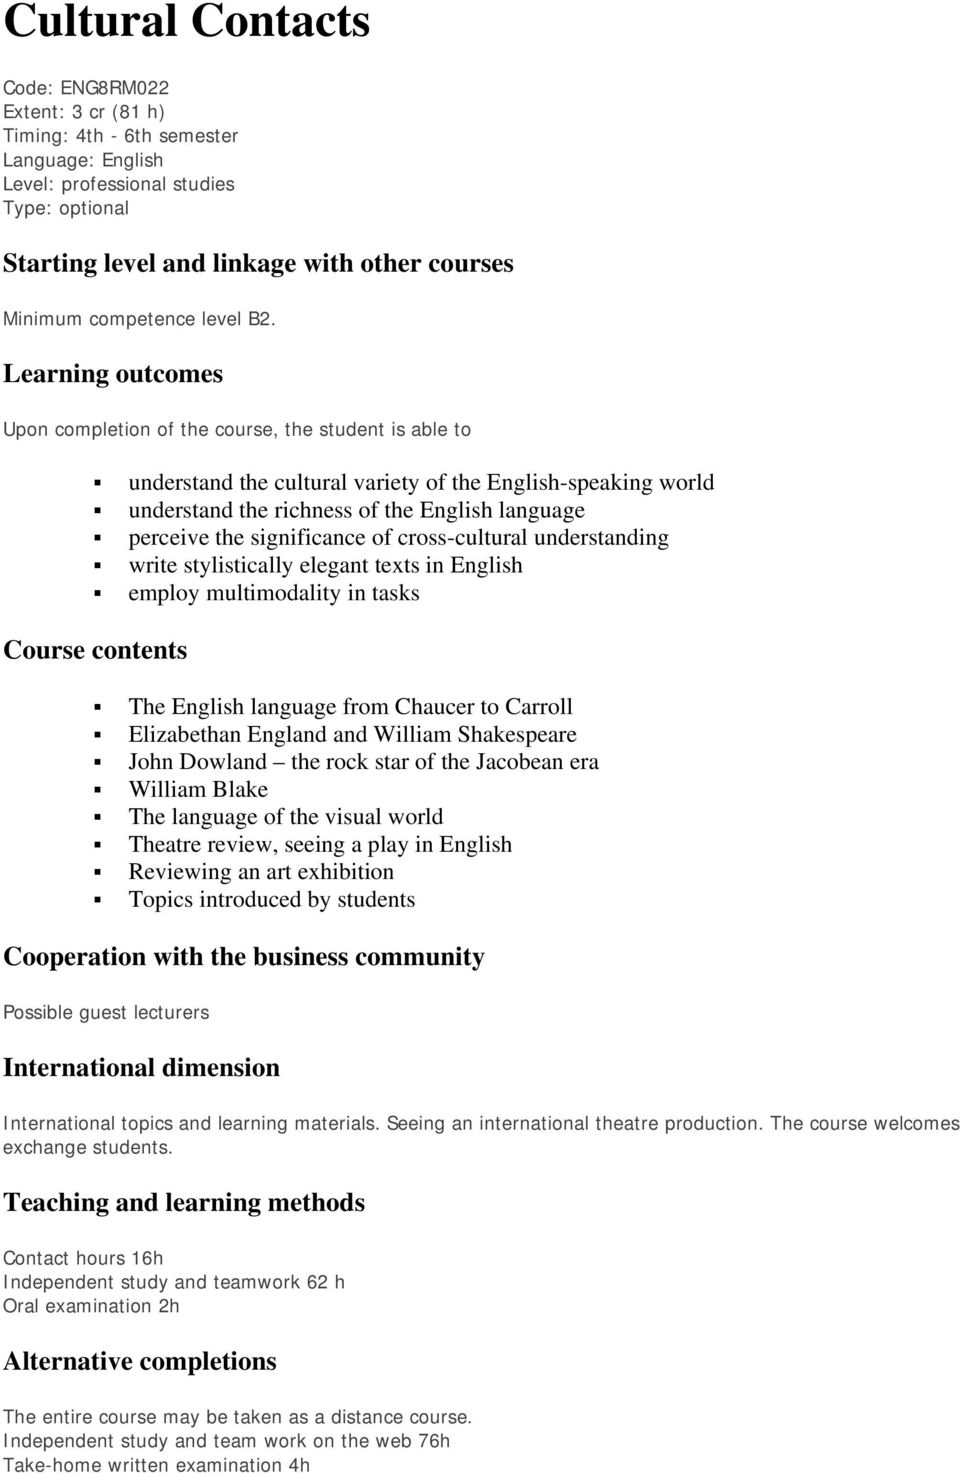 Learning outcomes Upon completion of the course, the student is able to understand the cultural variety of the English-speaking world understand the richness of the English language perceive the